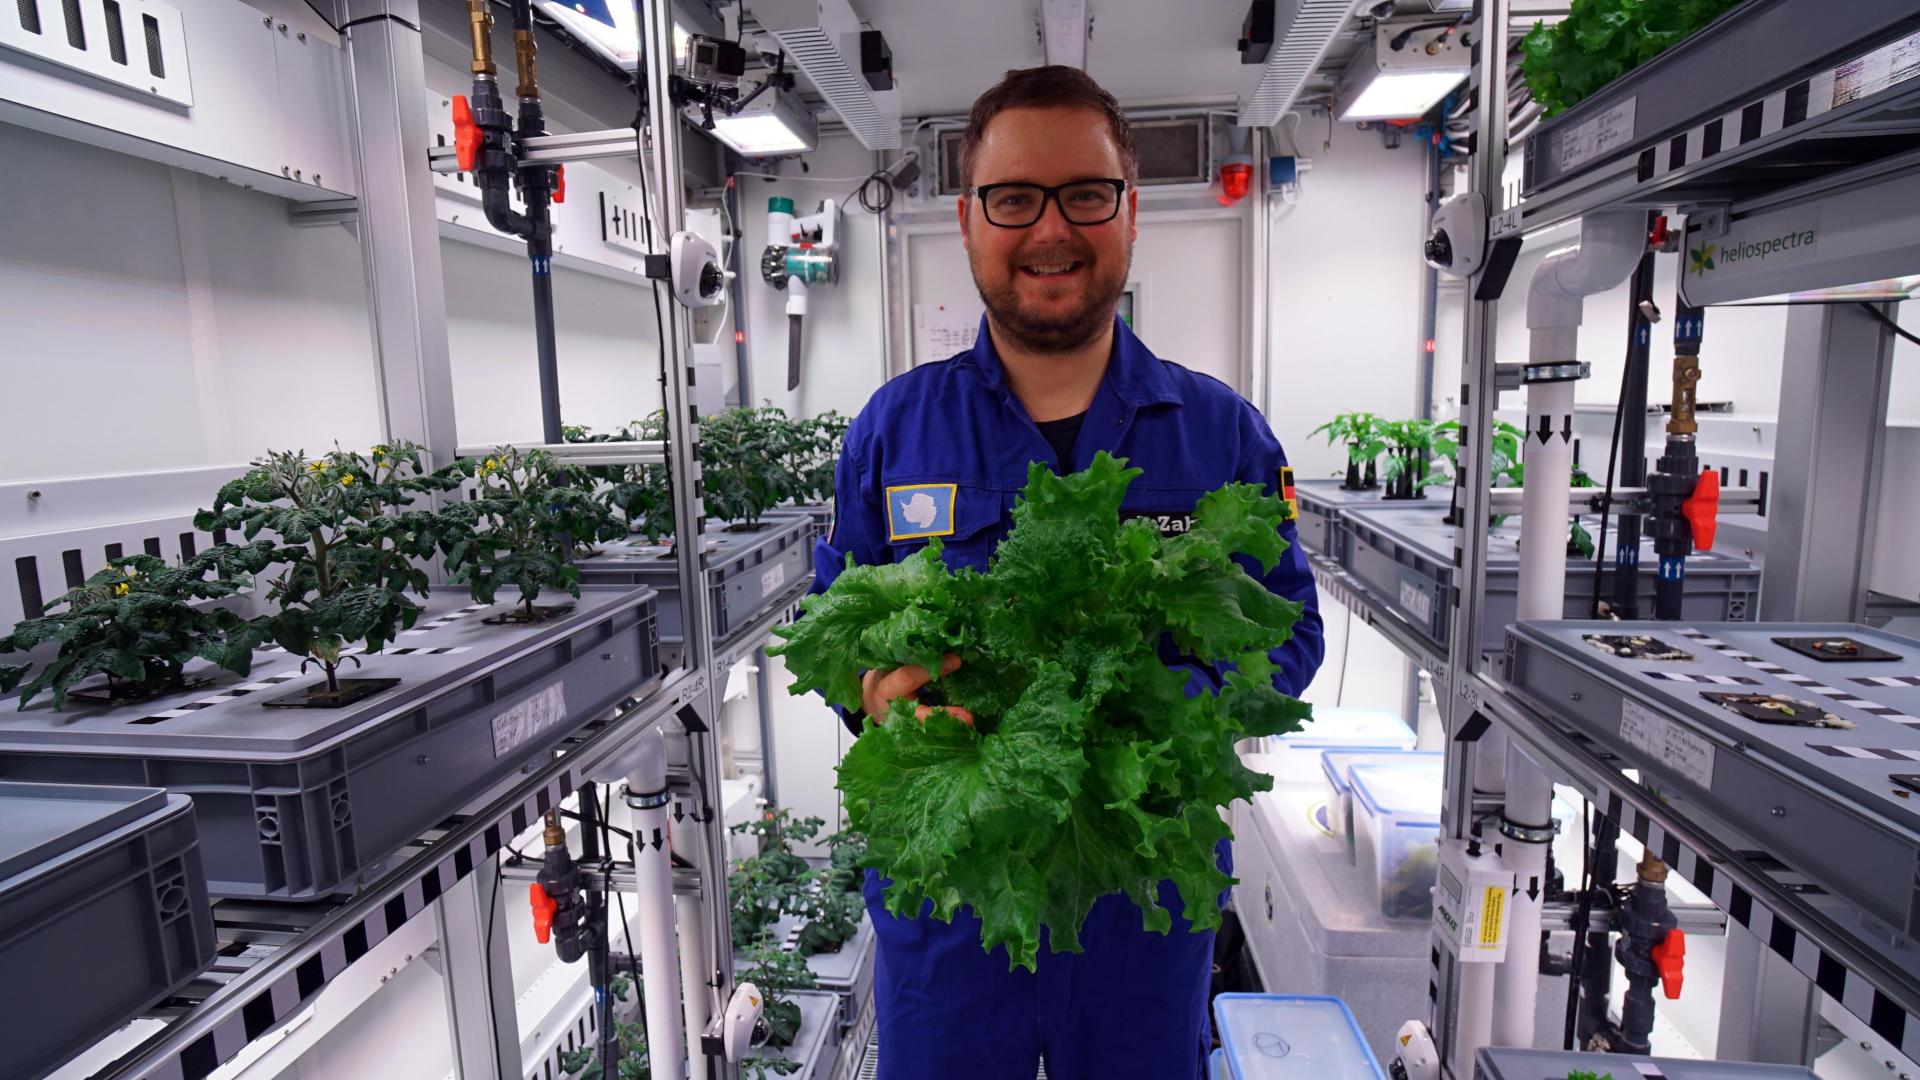 DLR researcher Paul Zabel holds a freshly harvested Antarctic lettuce in his hands